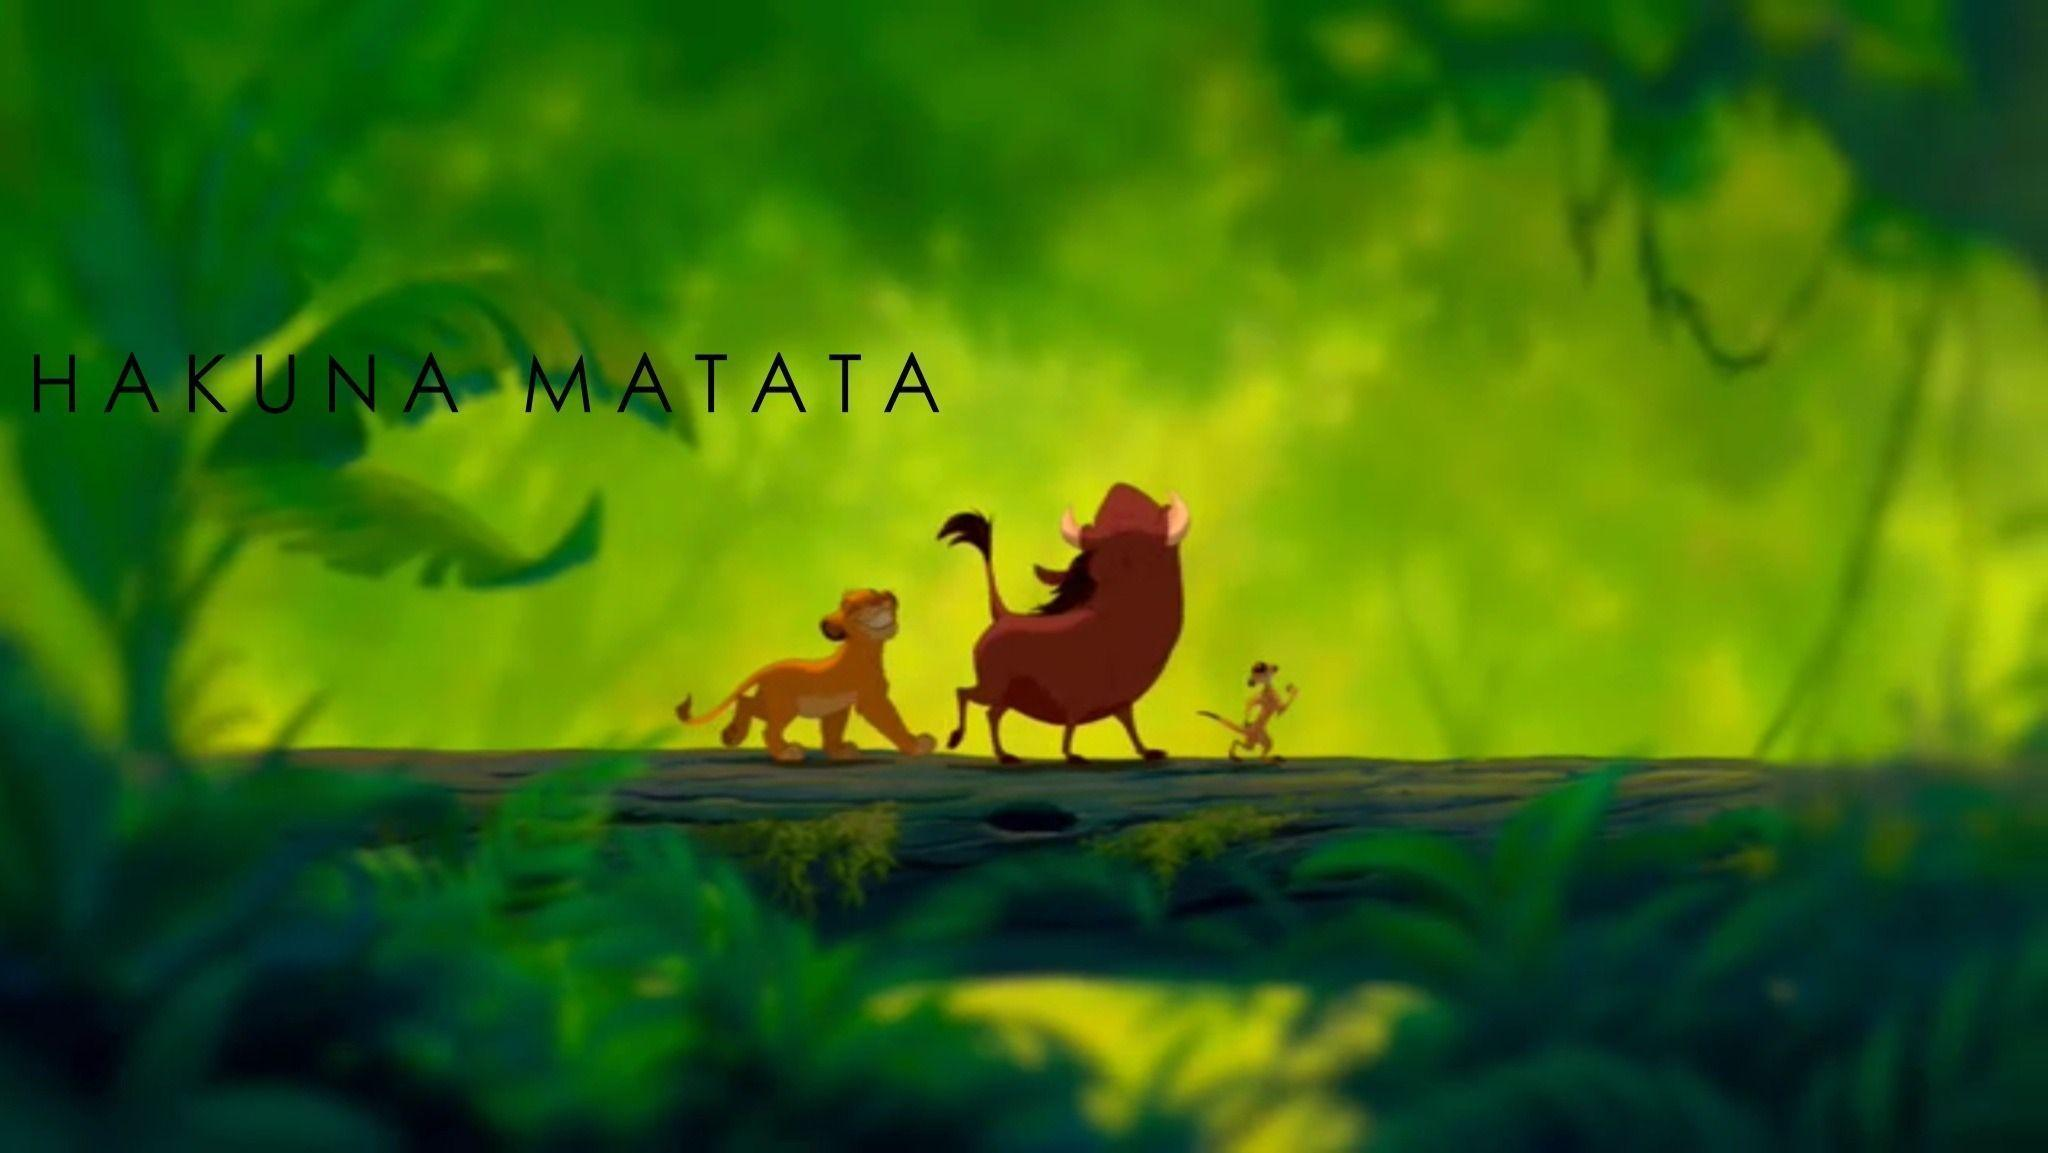 Hakuna Matata Feel Like Making Love